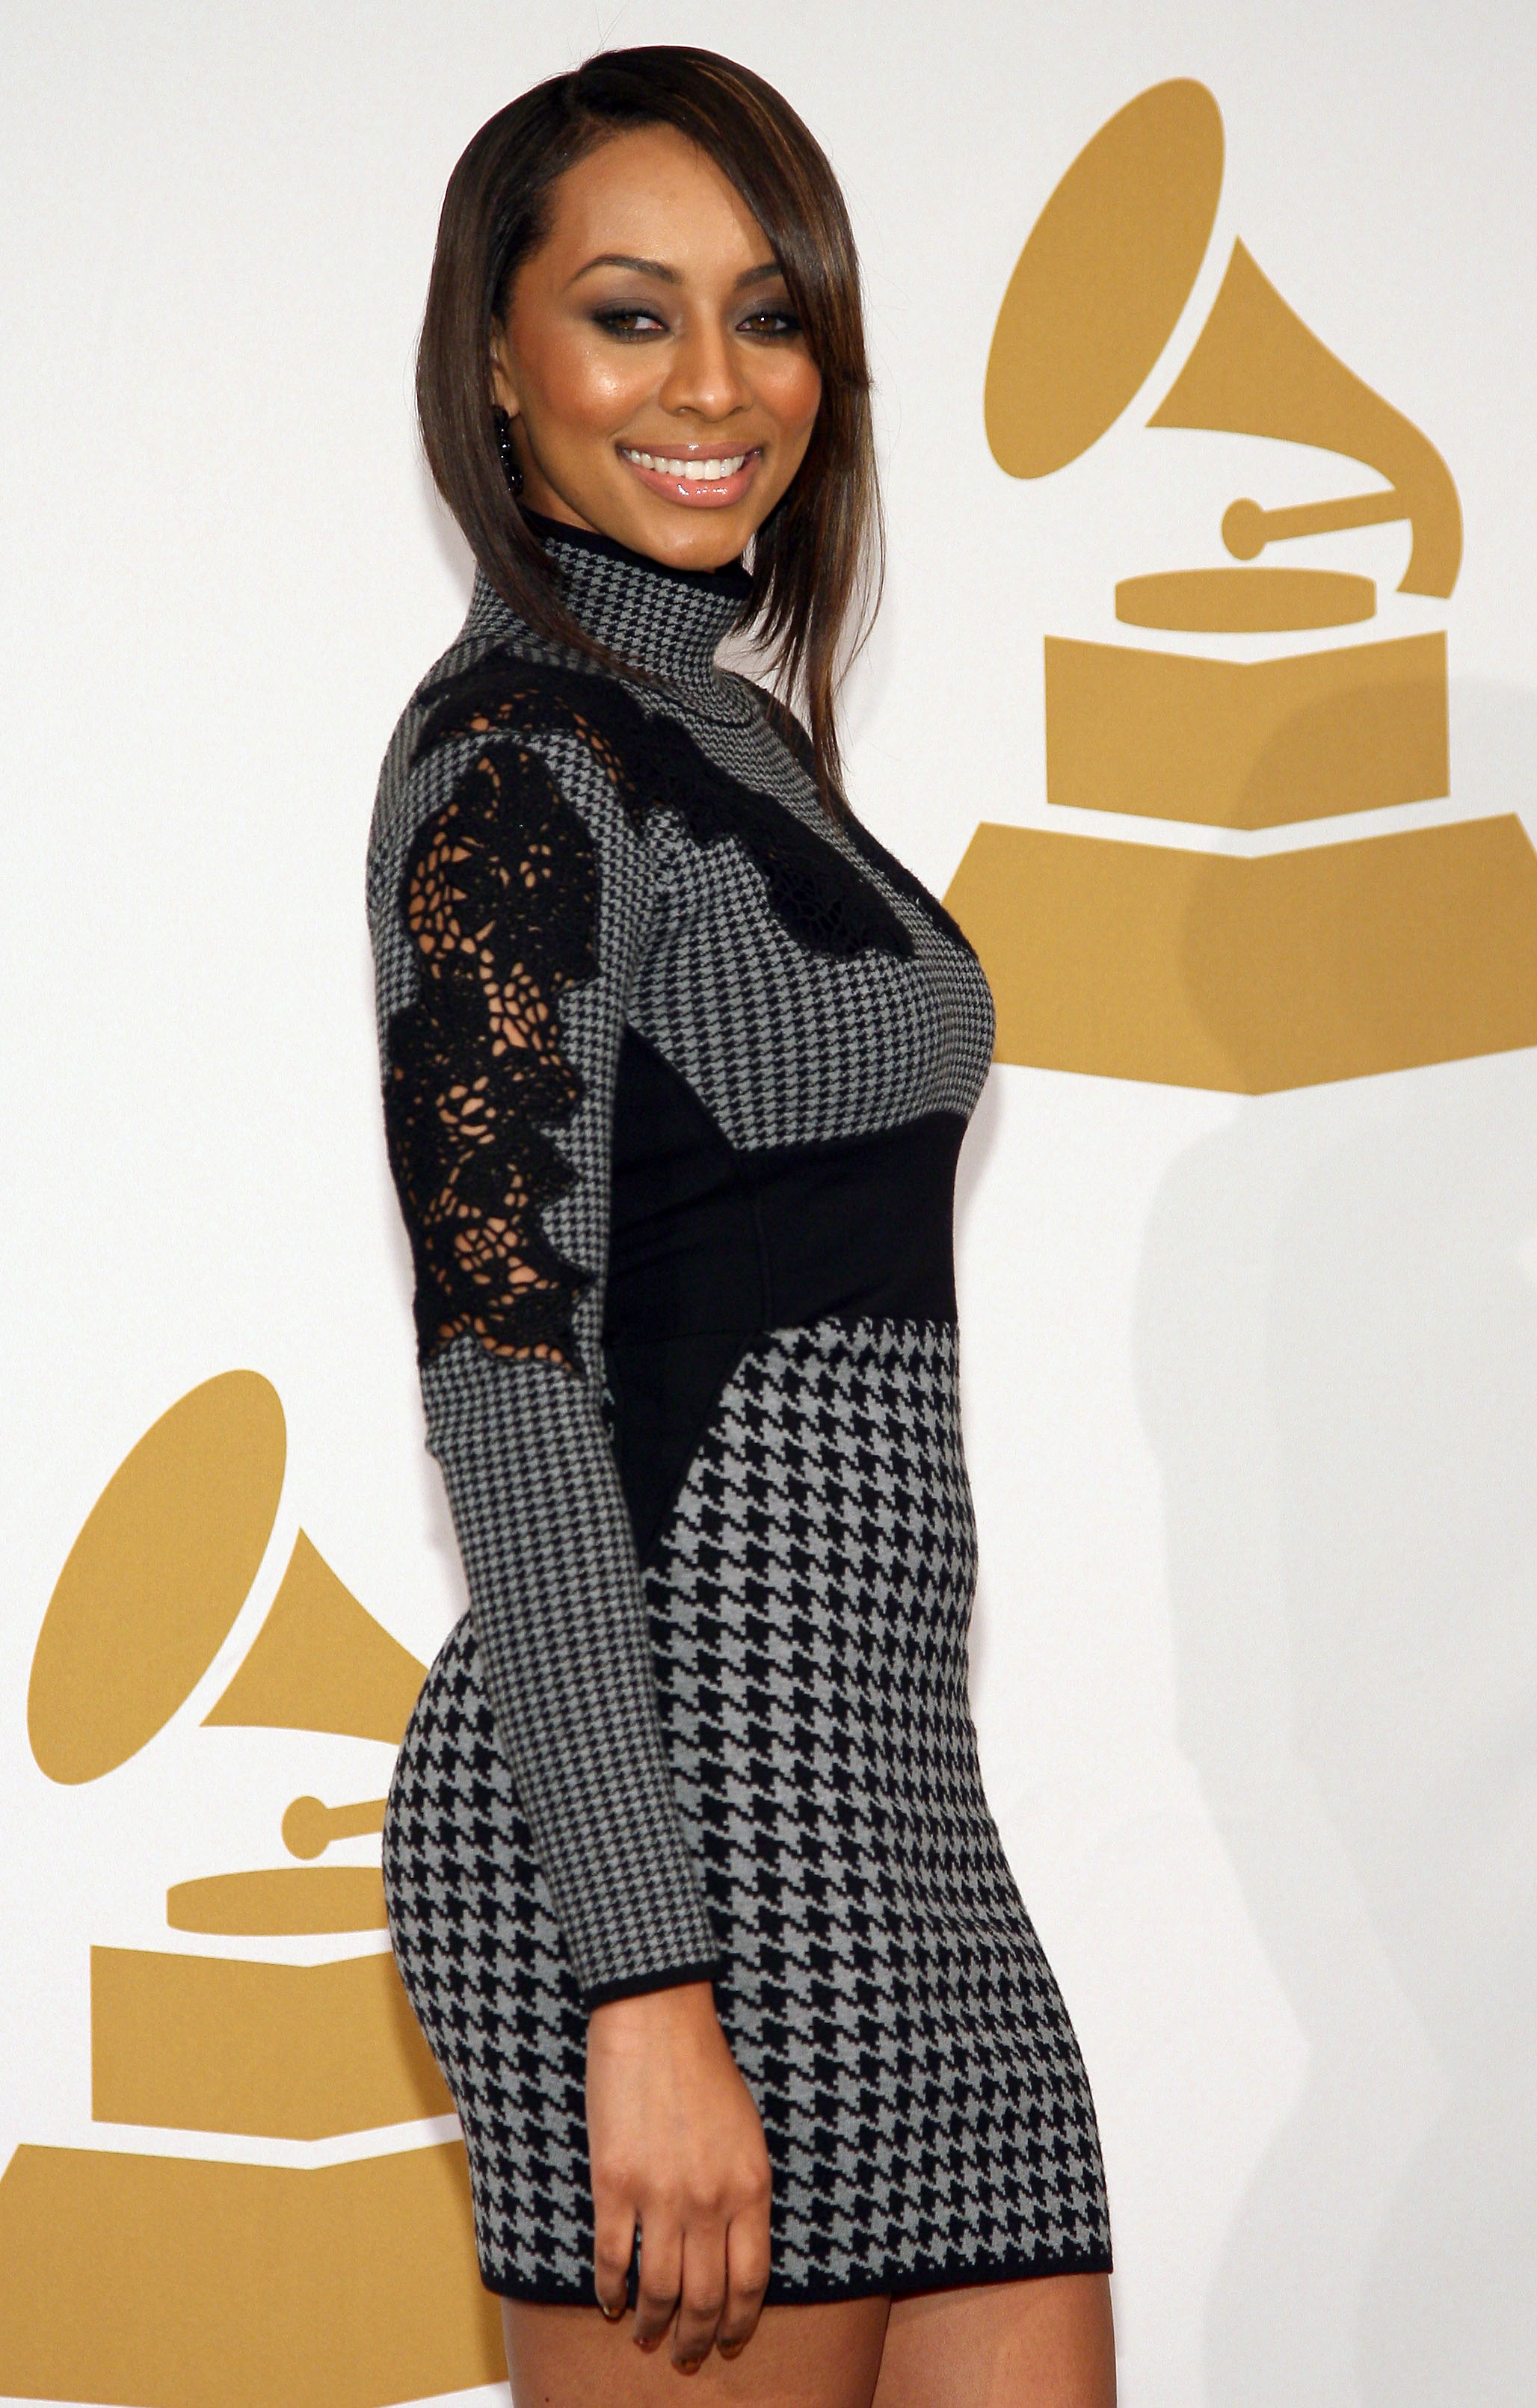 Keri Hilson Refuses To Acknowledge Beyonce During Interview